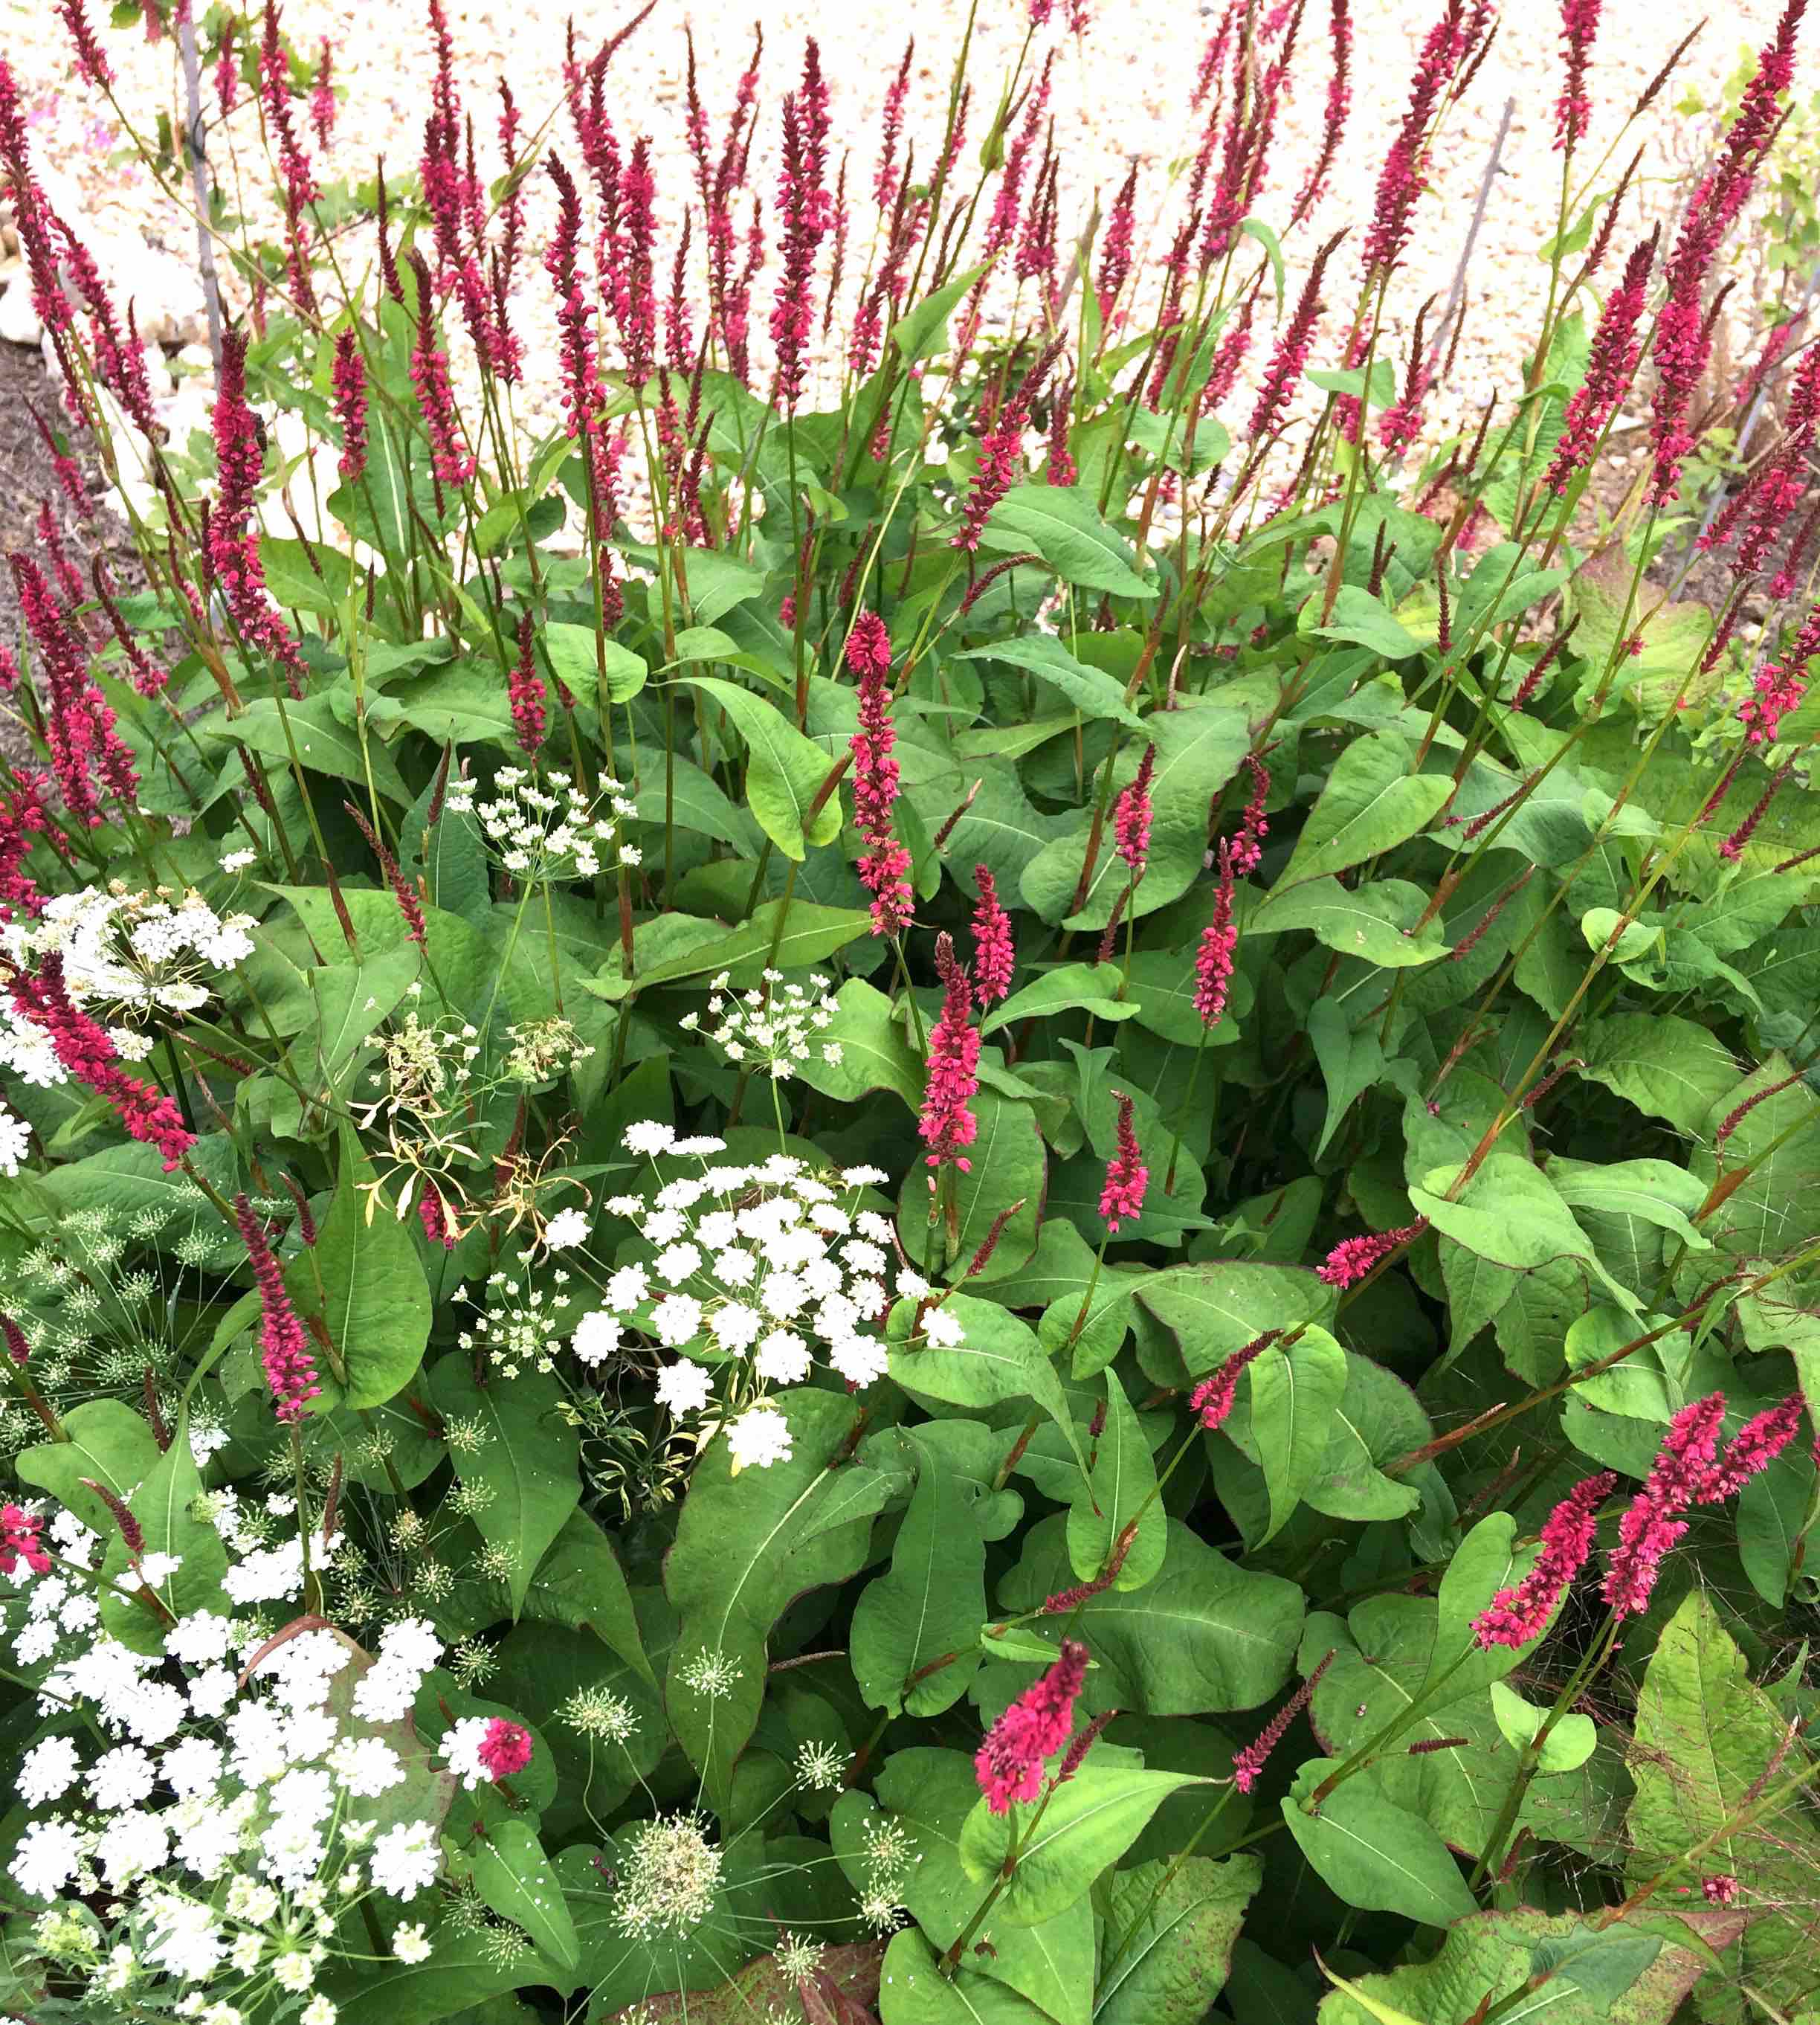 Persicaria and Ammi major